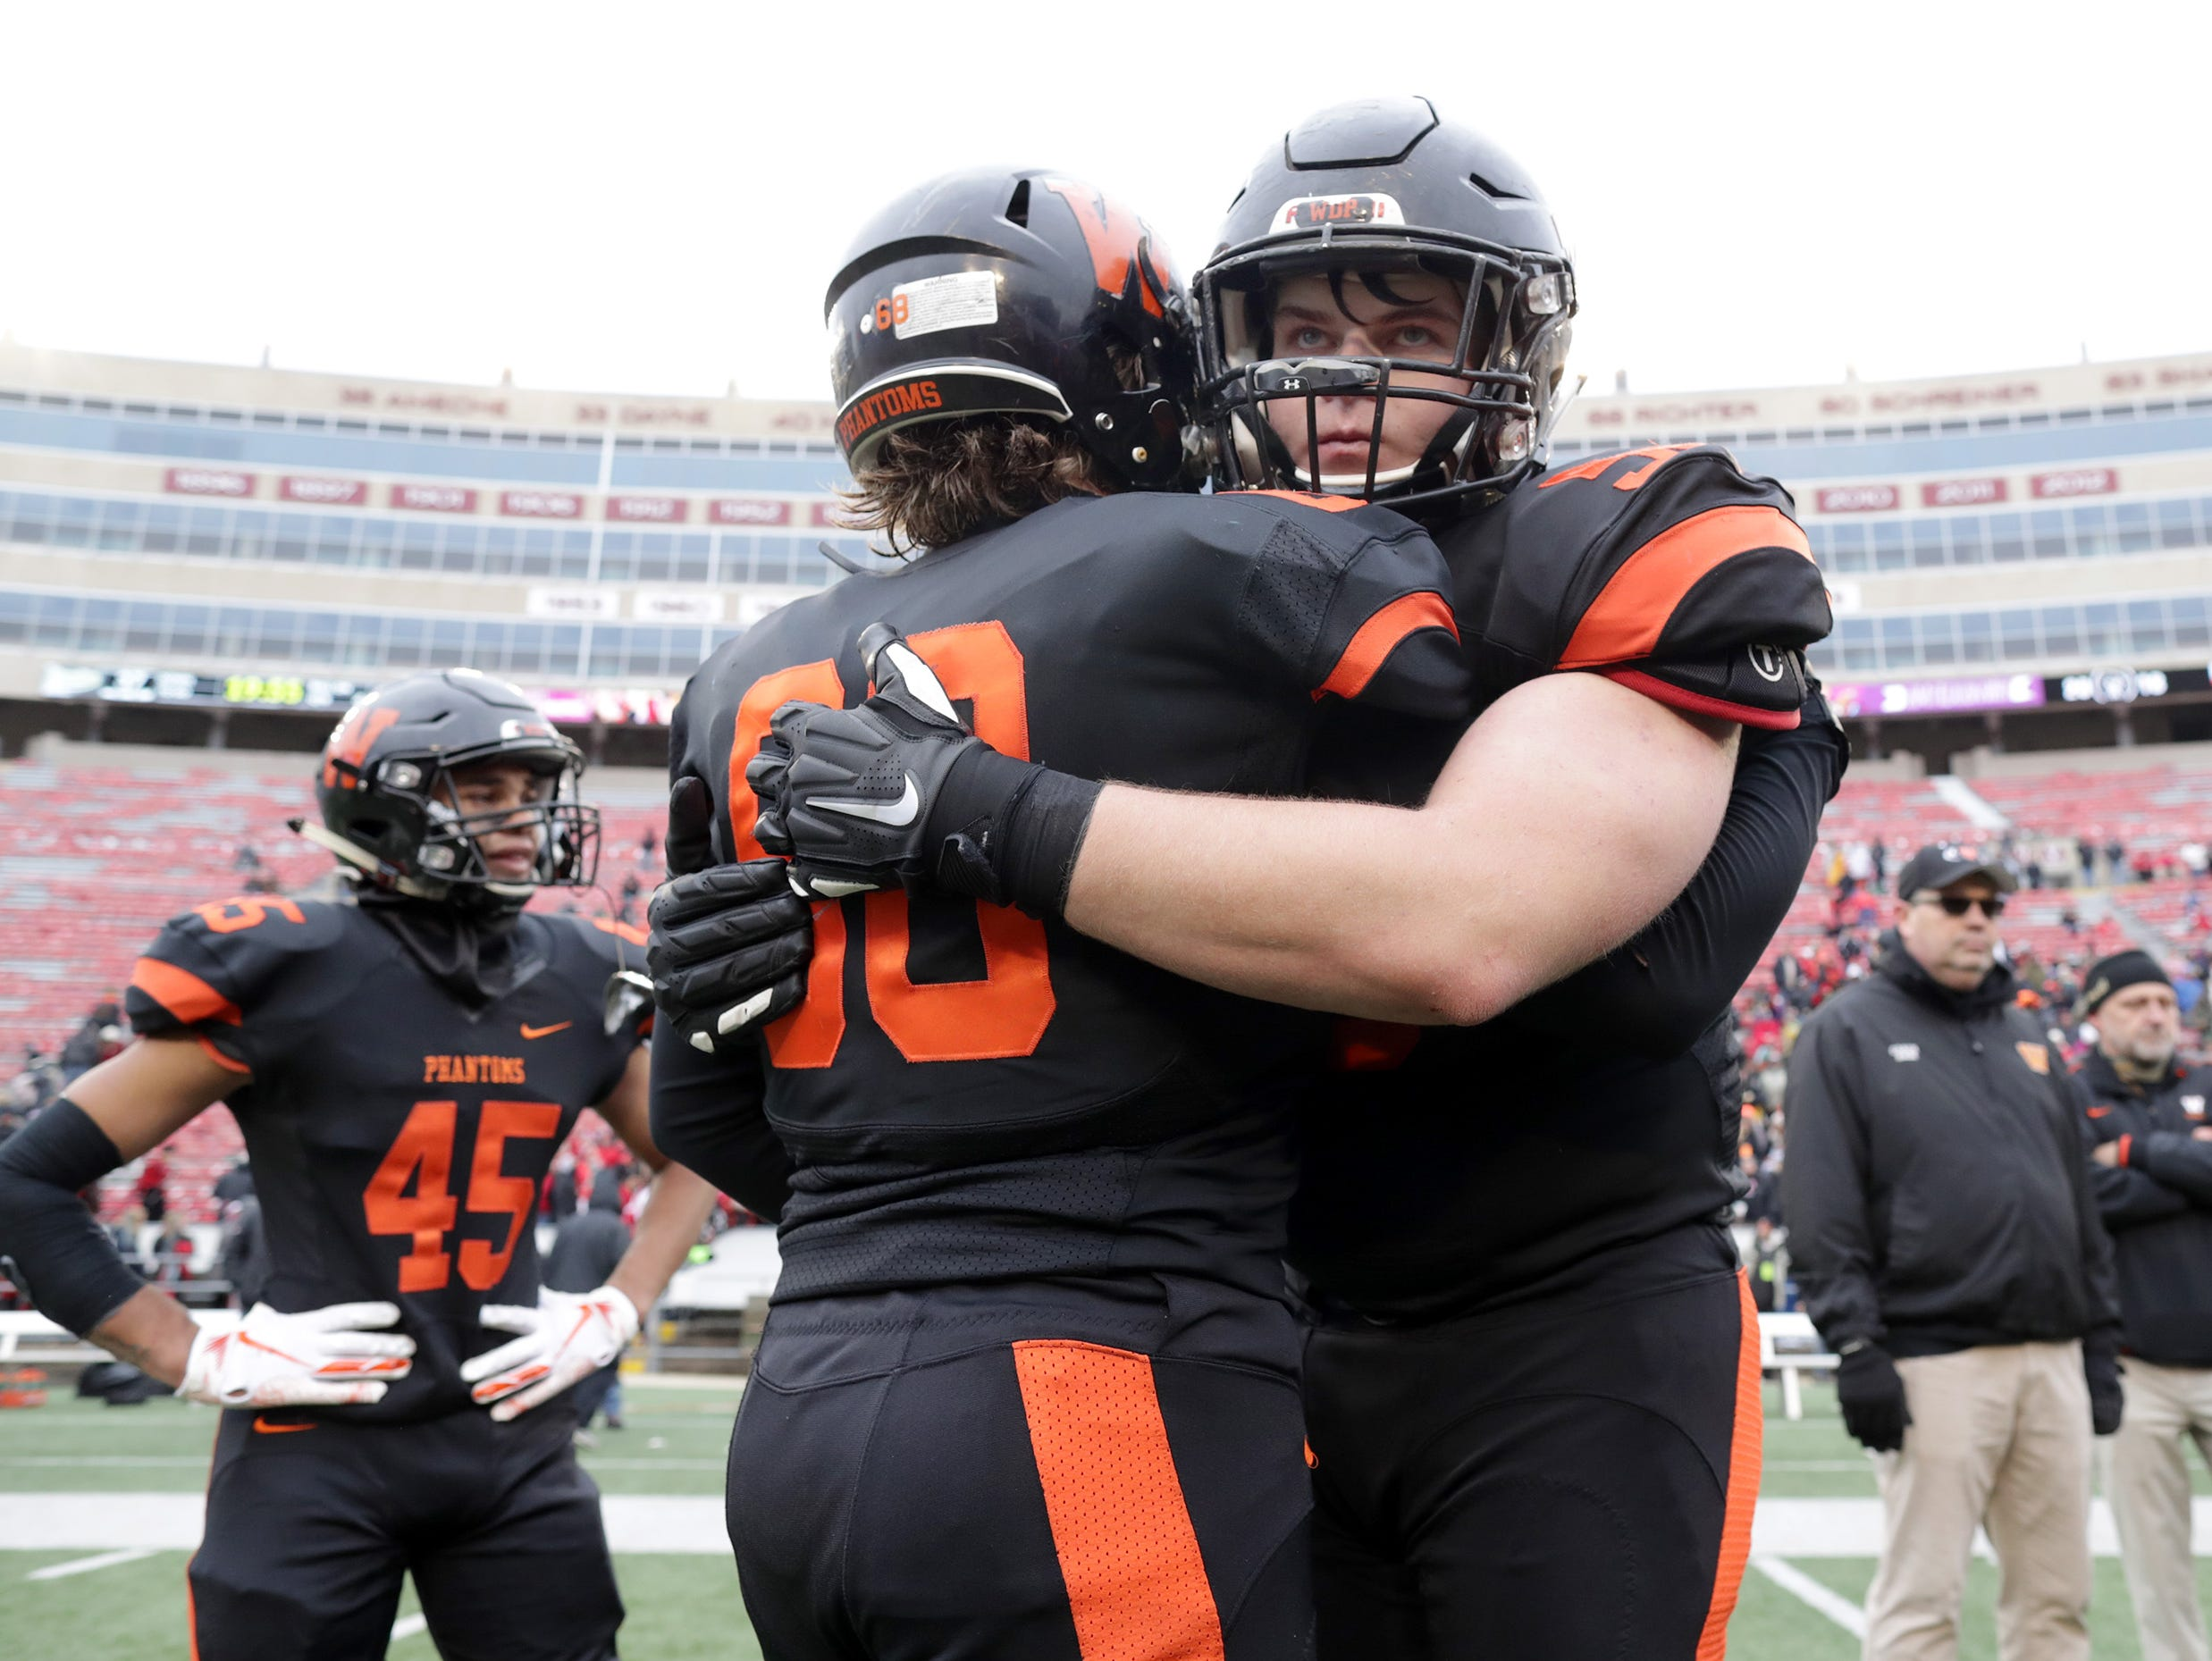 West De Pere High School's #68 Owyn Newman, left, and #58 Liam McDonough embrace after the Phantom's loss to Catholic Memorial High School during the WIAA Division 3 state championship football game on Friday, November 16, 2018, at Camp Randall in Madison, Wis.